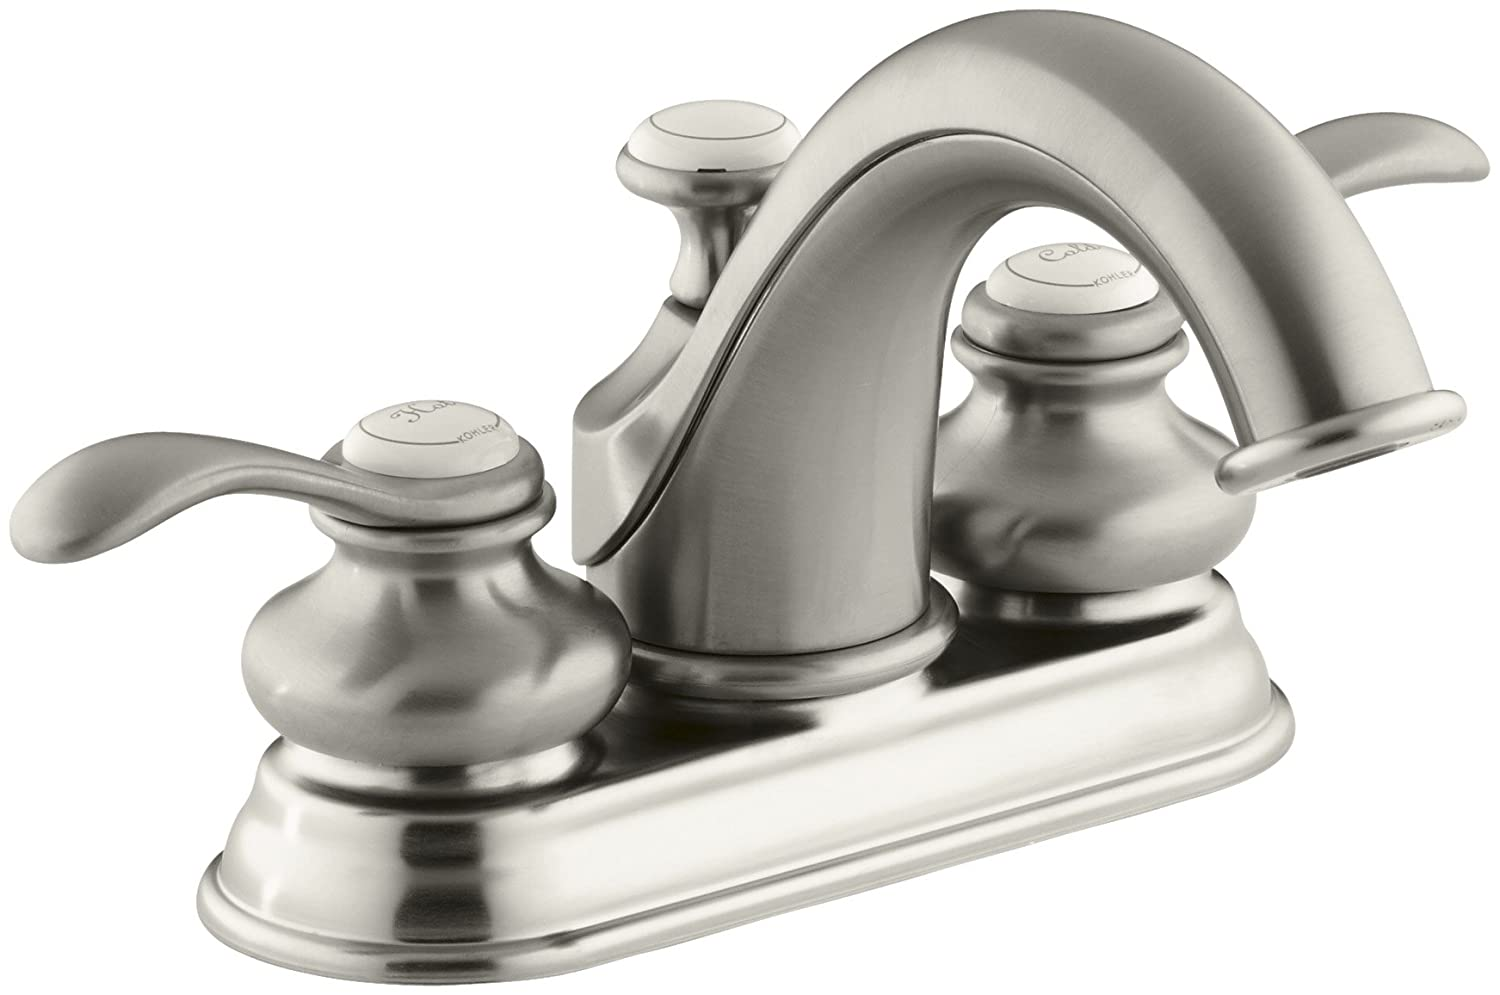 KOHLER K 12266 4 CP Fairfax Centerset Lavatory Faucet  Polished Chrome    Touch On Bathroom Sink Faucets   Amazon com. KOHLER K 12266 4 CP Fairfax Centerset Lavatory Faucet  Polished